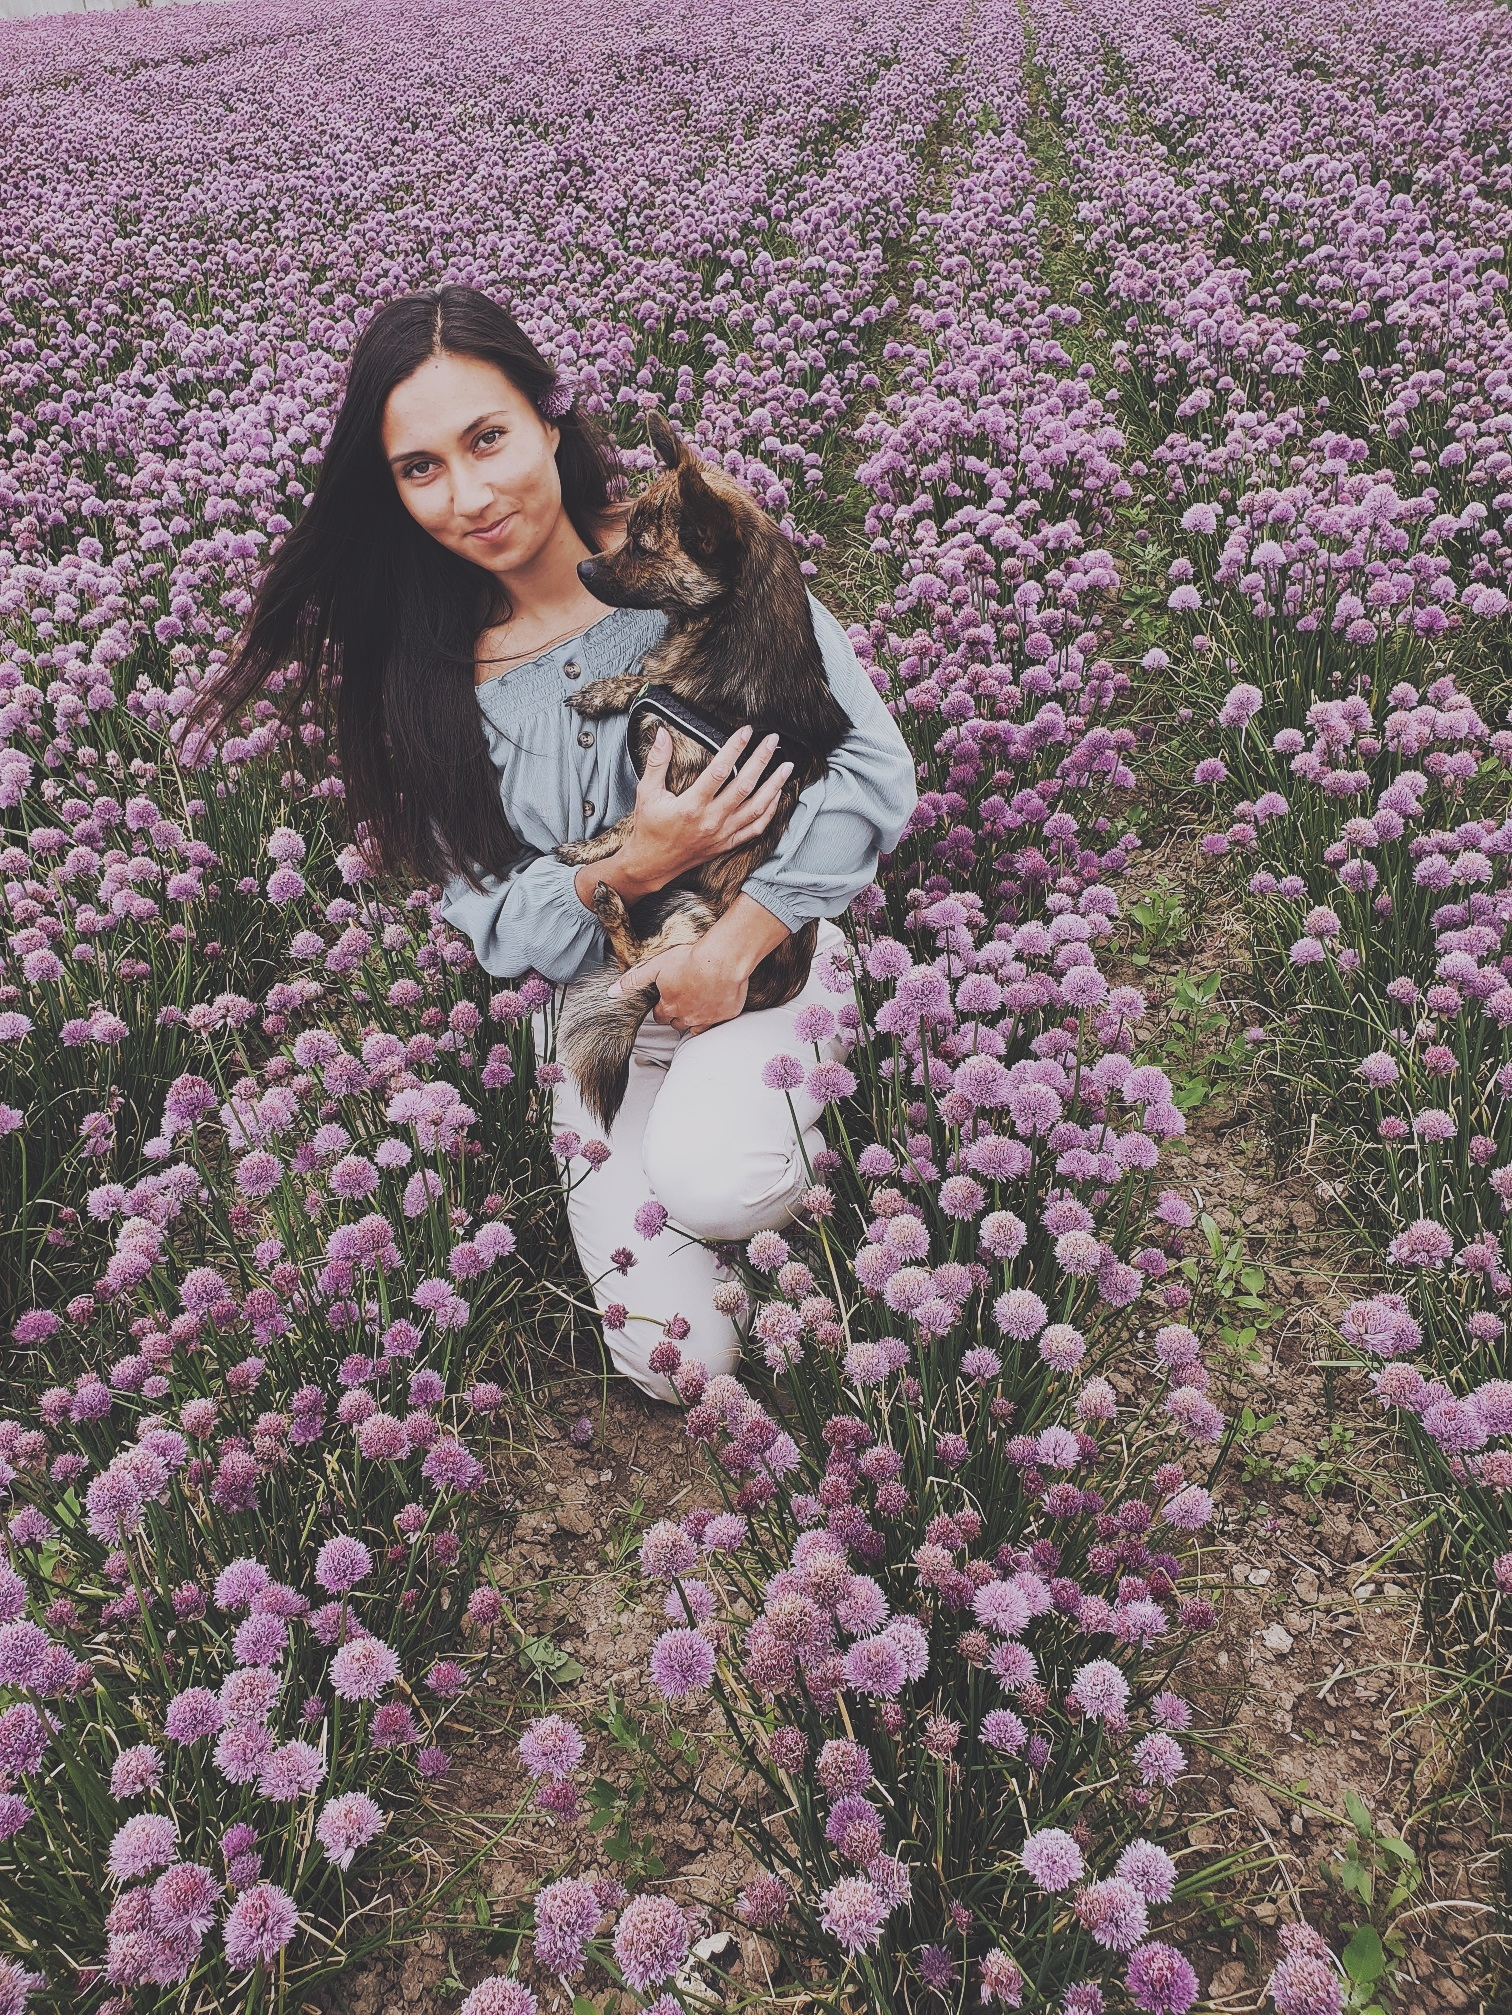 my friend sitting with her dog in a flower field